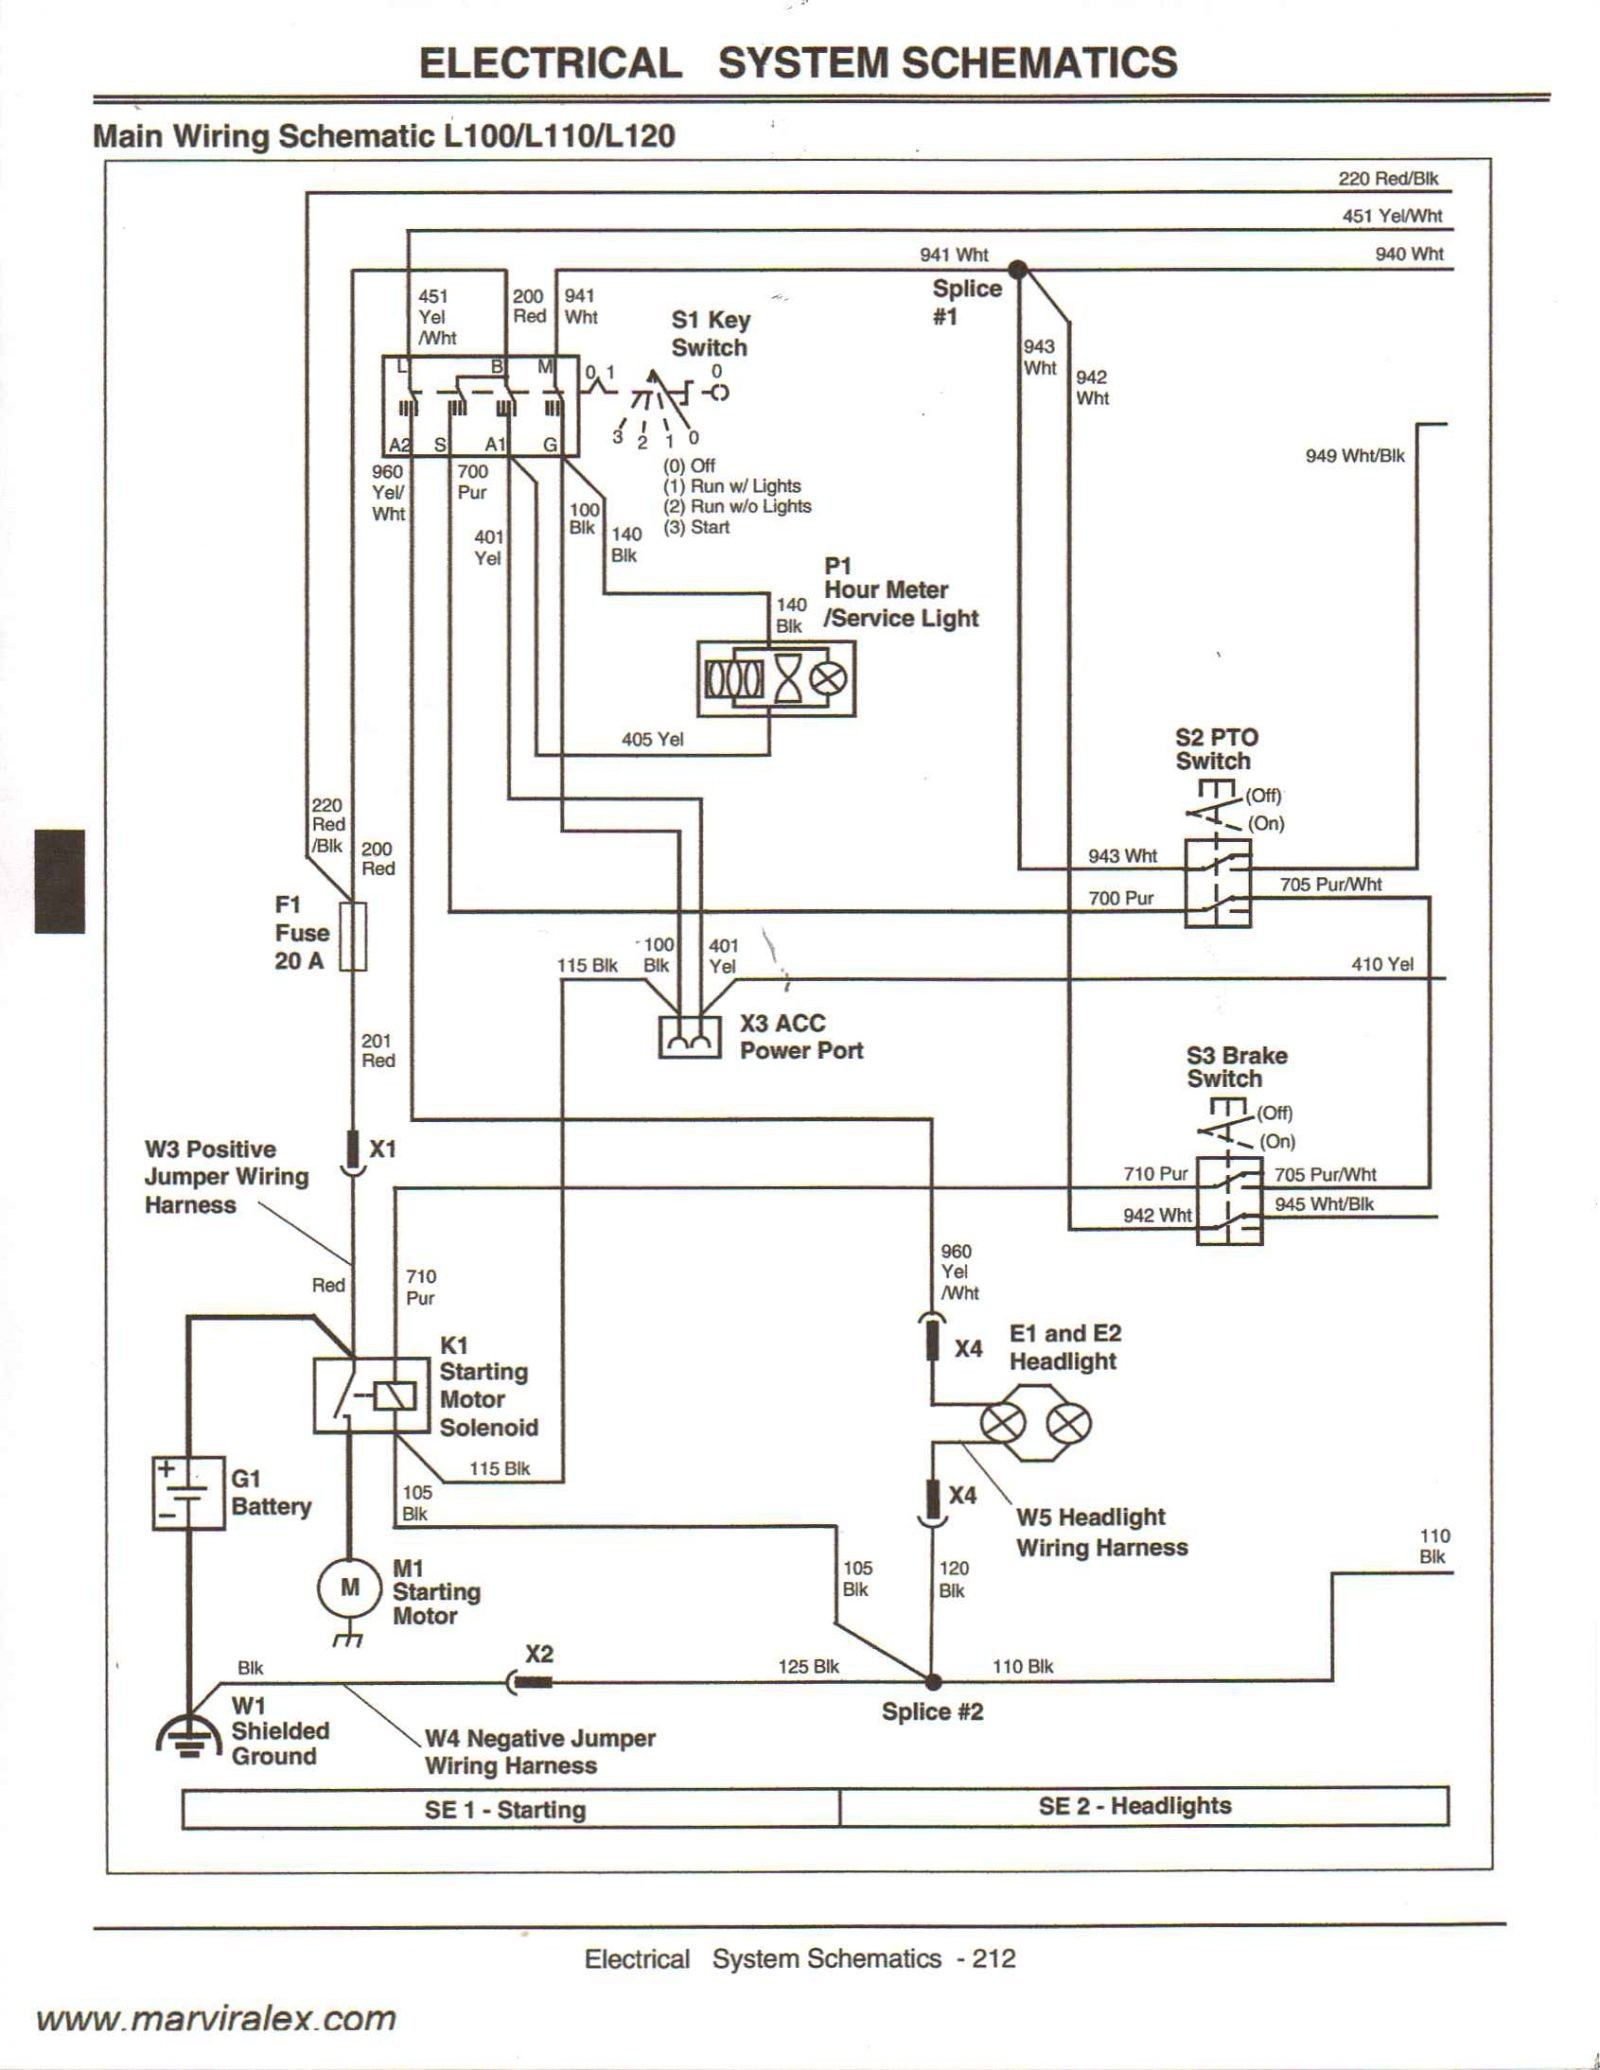 John Deere L125 Wiring Diagram | Wiring Diagram on john deere gator wiring-diagram, jd la120 wiring-diagram, john deere l125 manual, john deere d125 wiring-diagram, john deere z225 wiring-diagram, john deere 445 wiring-diagram, john deere 165 wiring-diagram, john deere l102 wiring-diagram, john deere l118 wiring-diagram, john deere 425 wiring-diagram, john deere m wiring-diagram, john deere lx255 wiring-diagram, john deere l110 wiring-diagram, john deere stx38 wiring-diagram, john deere 112 wiring-diagram, john deere rx75 wiring-diagram,